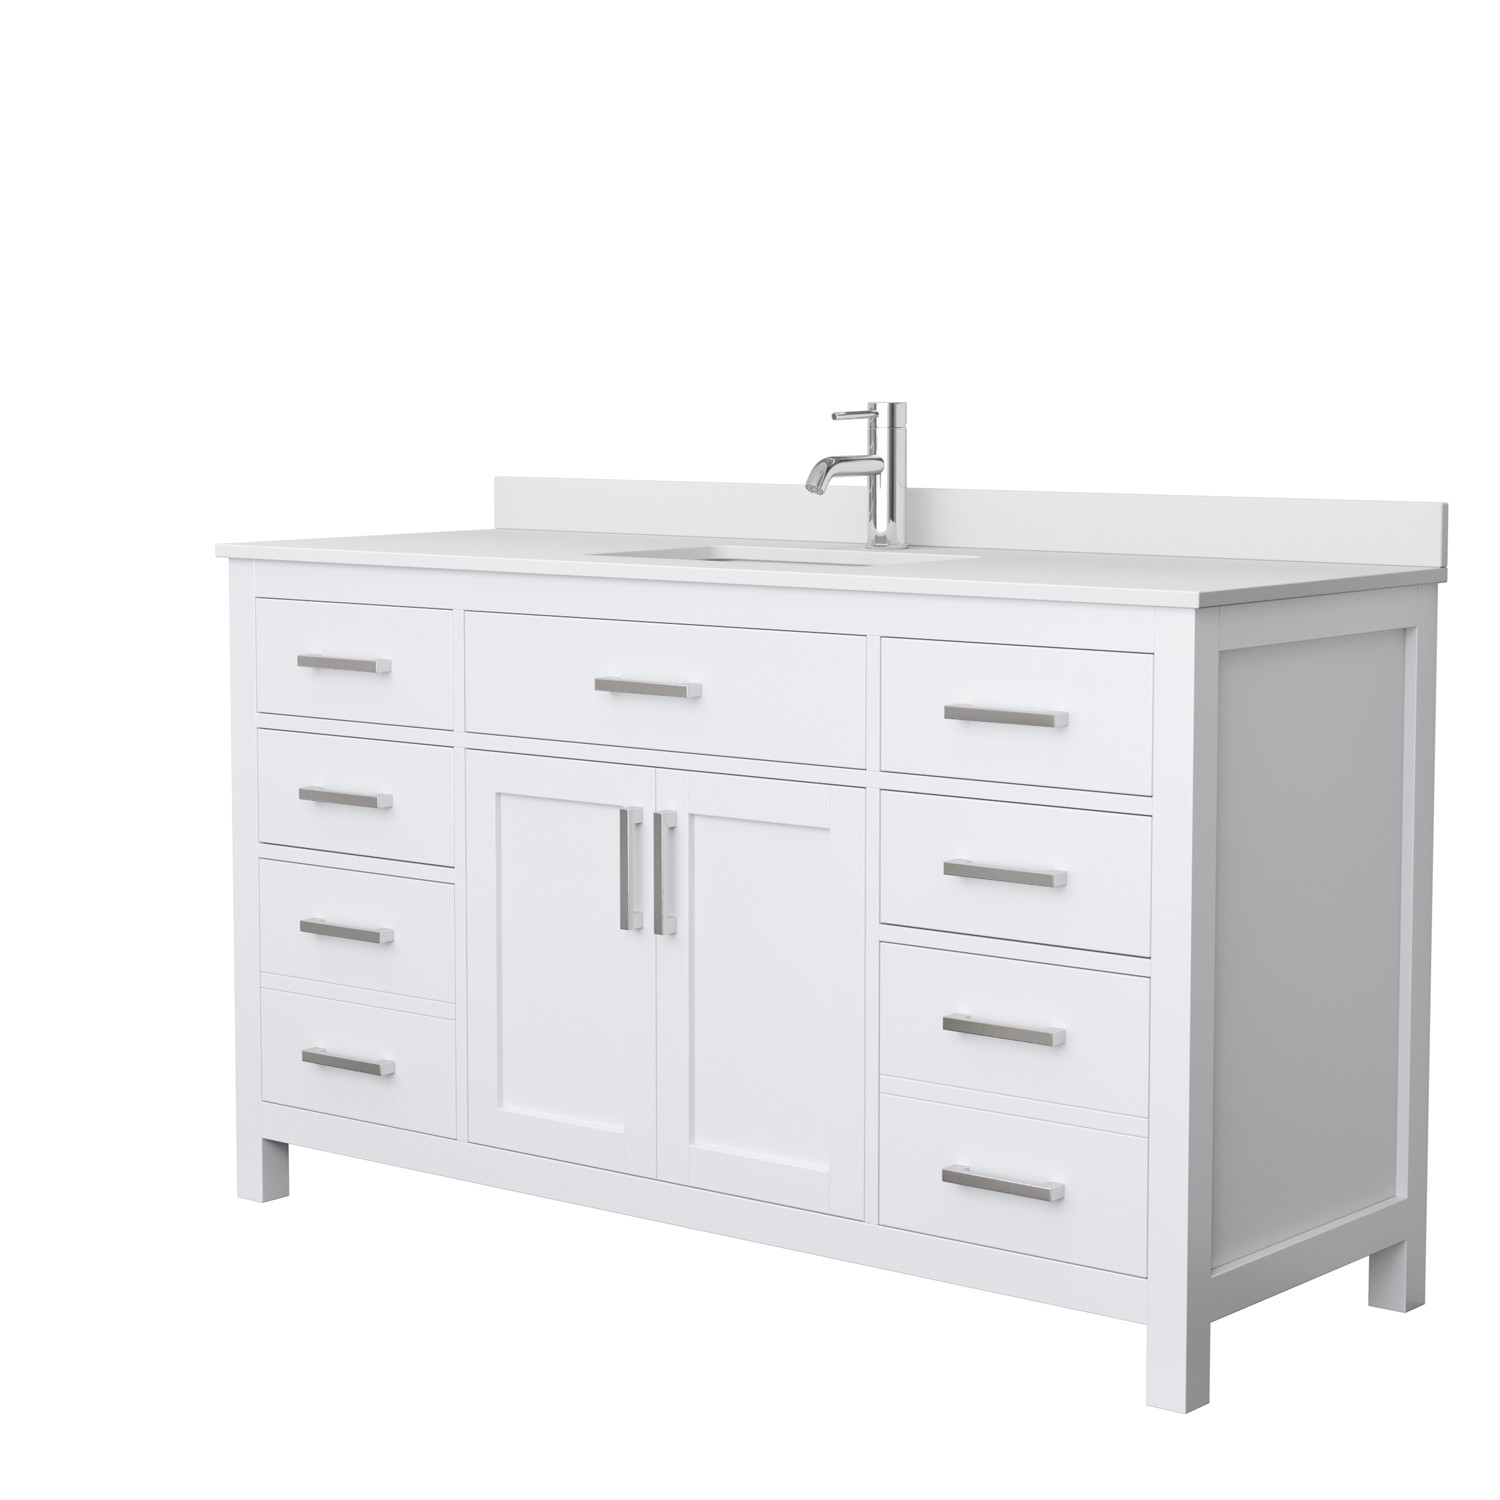 wyndham collection wcg242460swhwcunsmxx beckett 60 inch single bathroom vanity in white white cultured marble countertop undermount square sink no